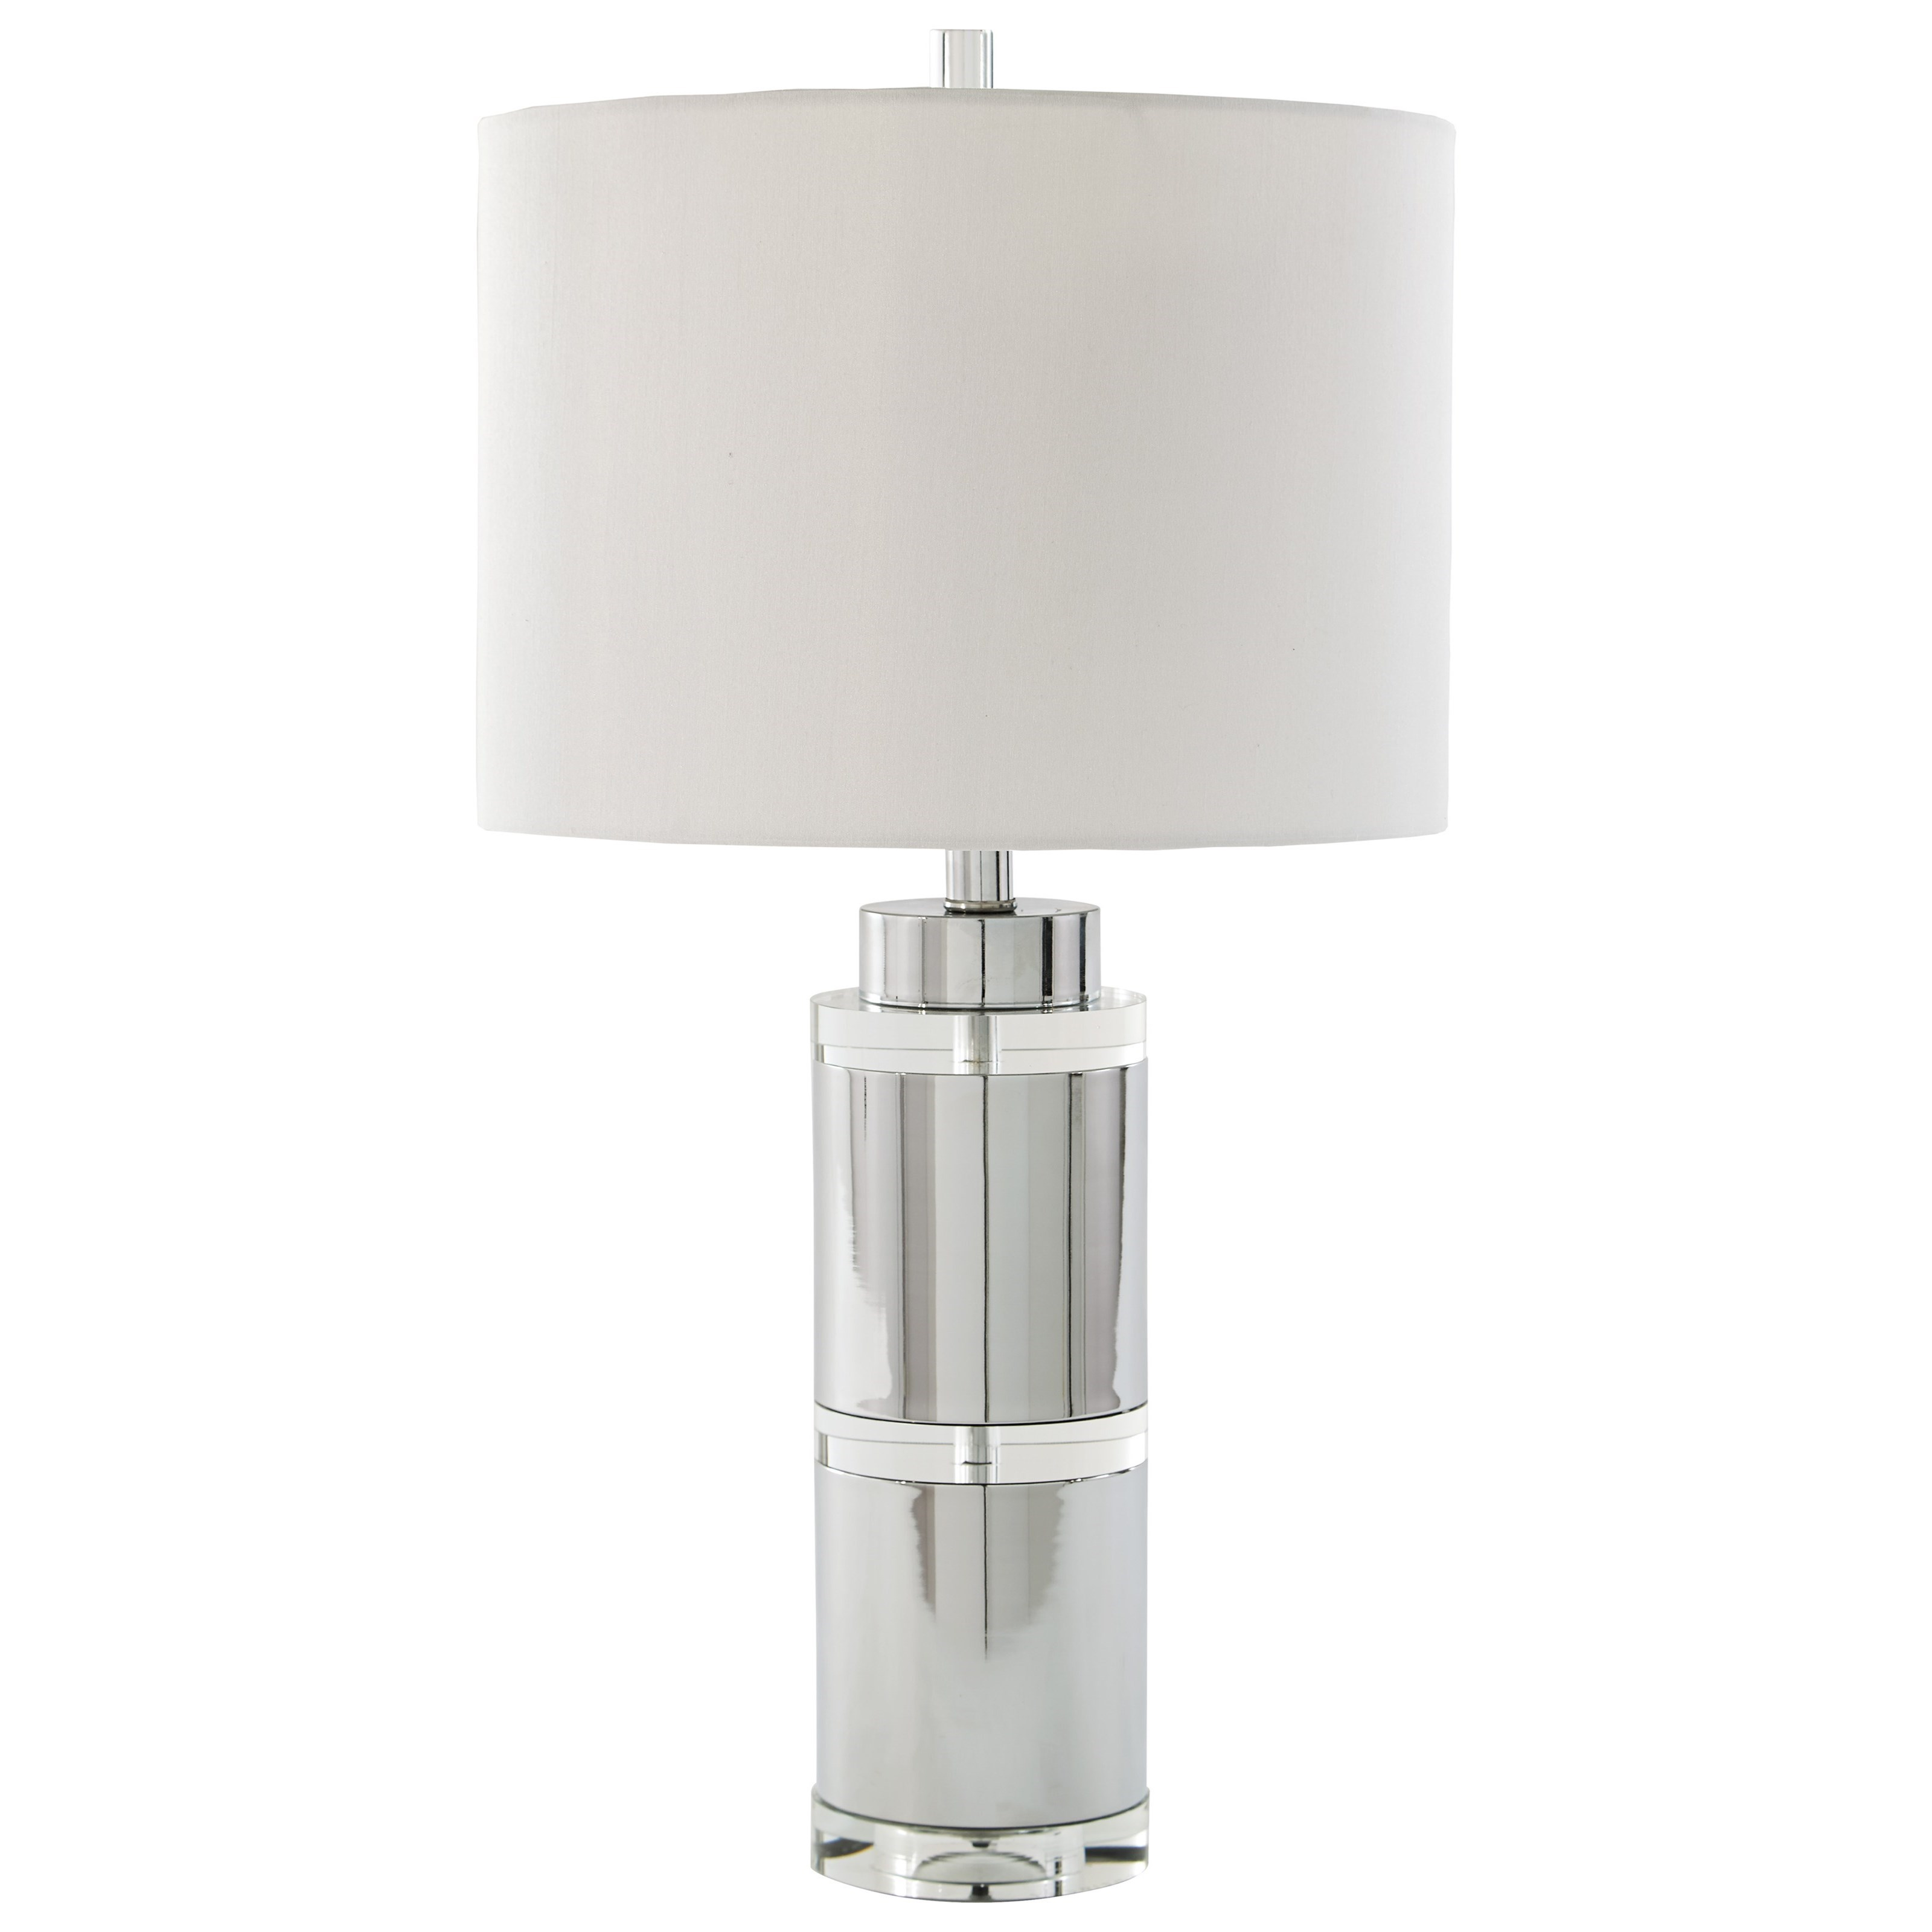 Signature Design by Ashley Lamps - Contemporary Set of 2 Makram Metal Table Lamps - Item Number: L428124